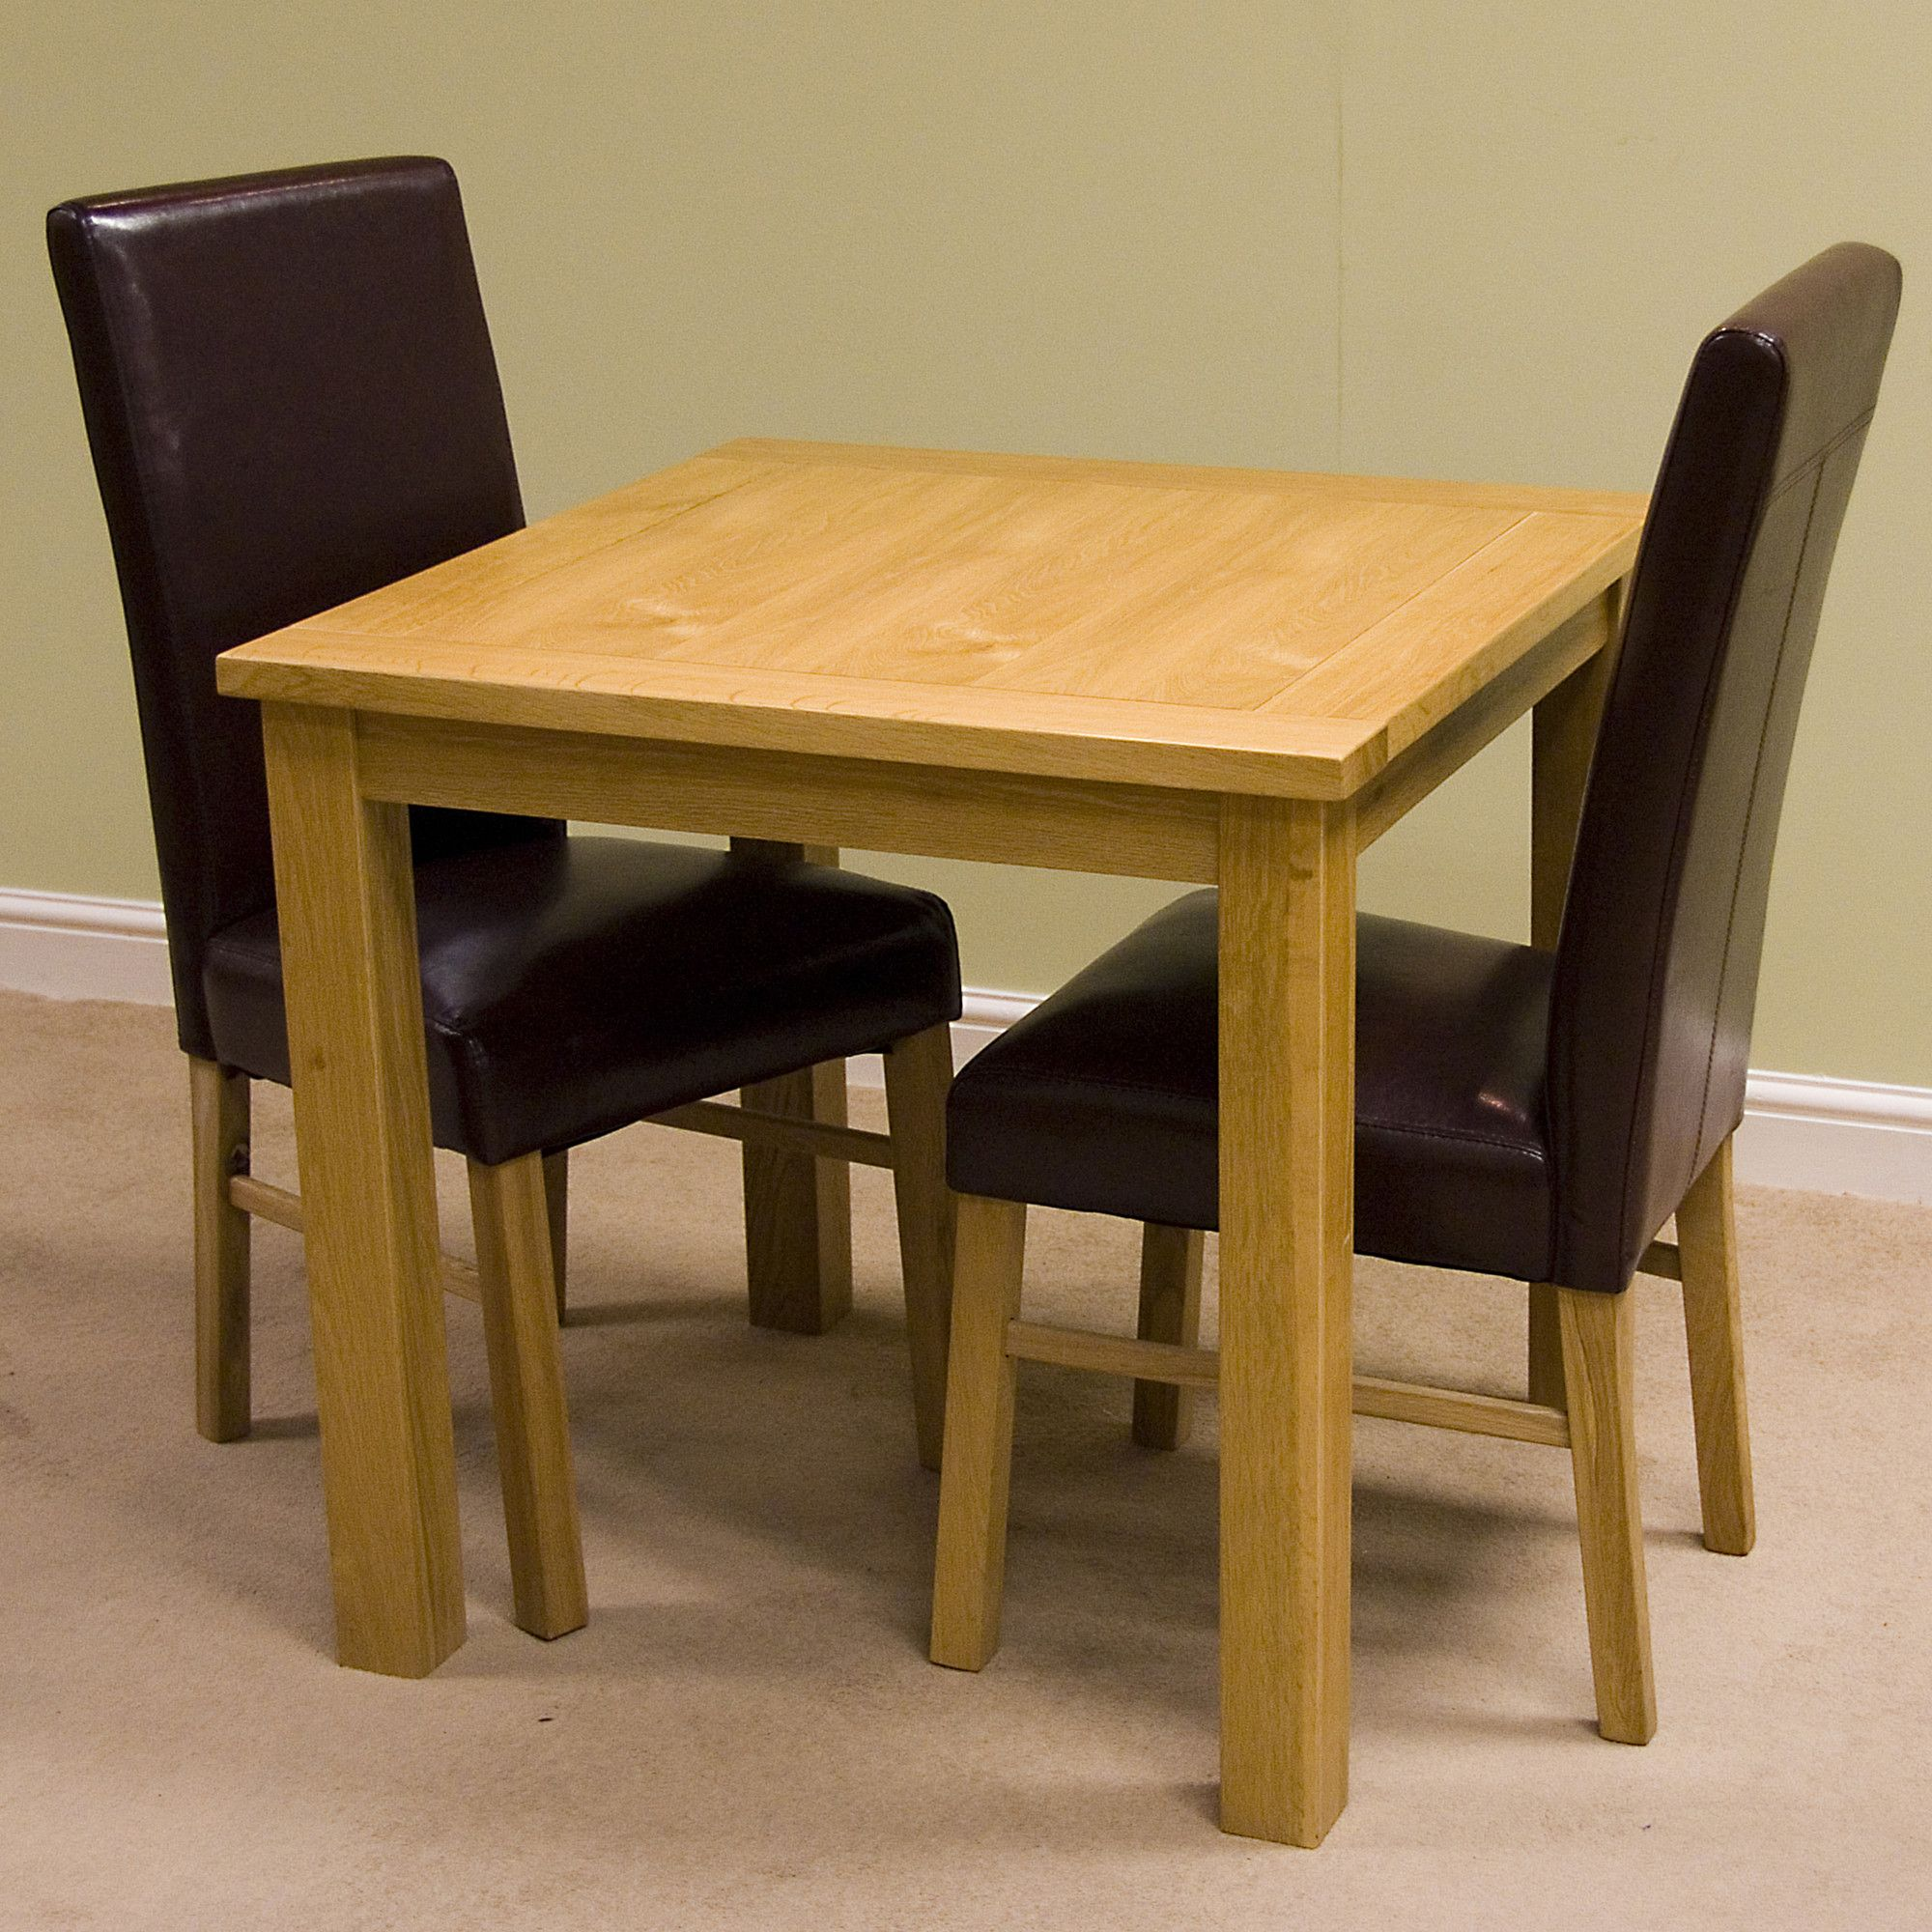 G&P Furniture Lyon Oak 3 Piece Fixed Top Dining Collection